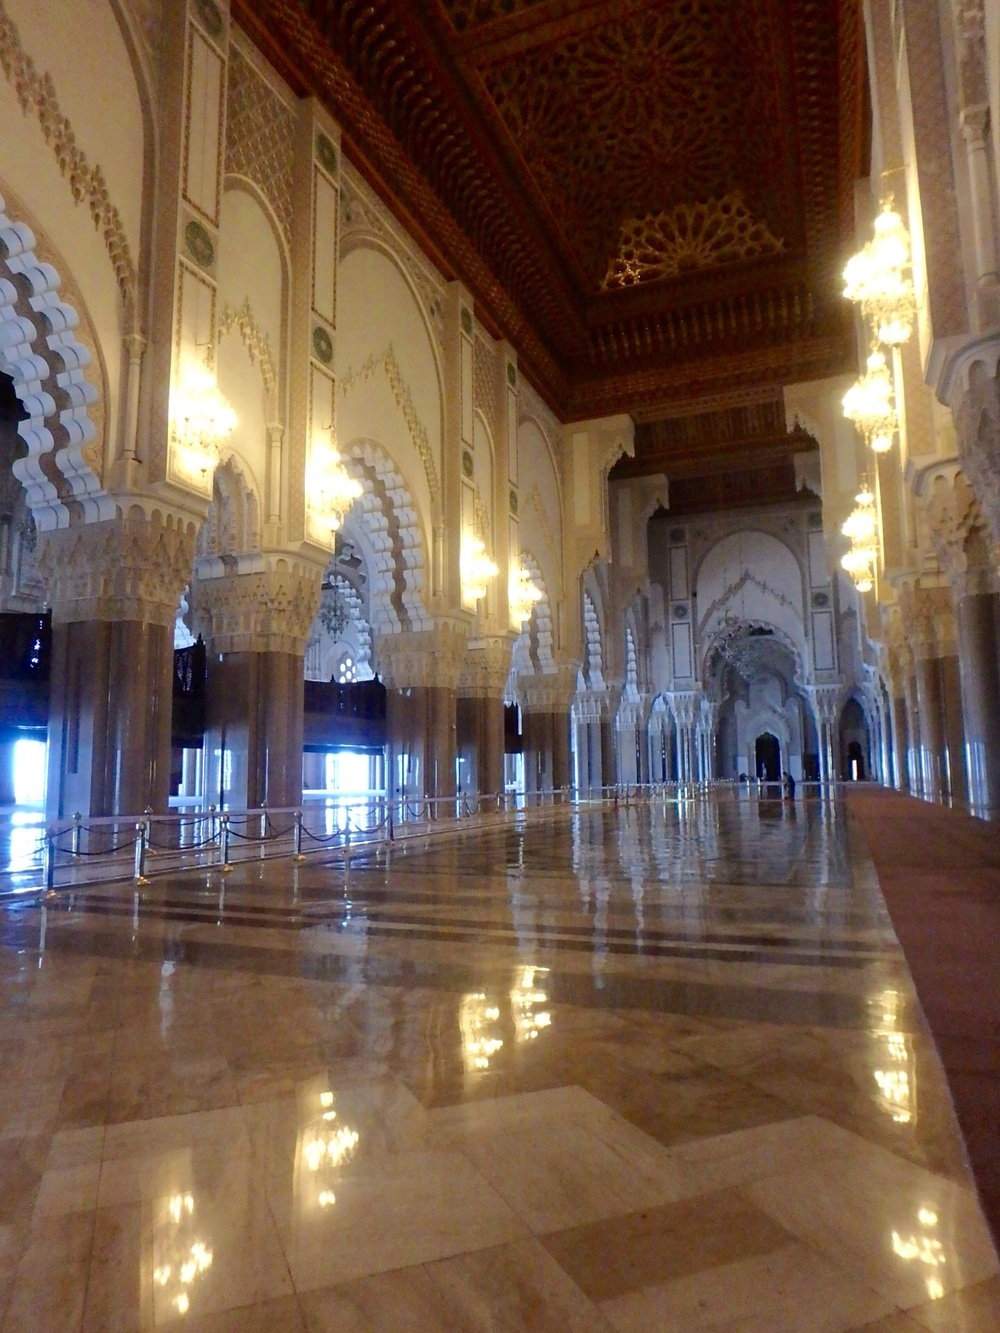 This is the main interior area of the mosque and the worship hall. The roof is decorative as well as functional - it retracts to help with air circulation for the 25,000 worshippers expected to arrive for Ramadan next week.